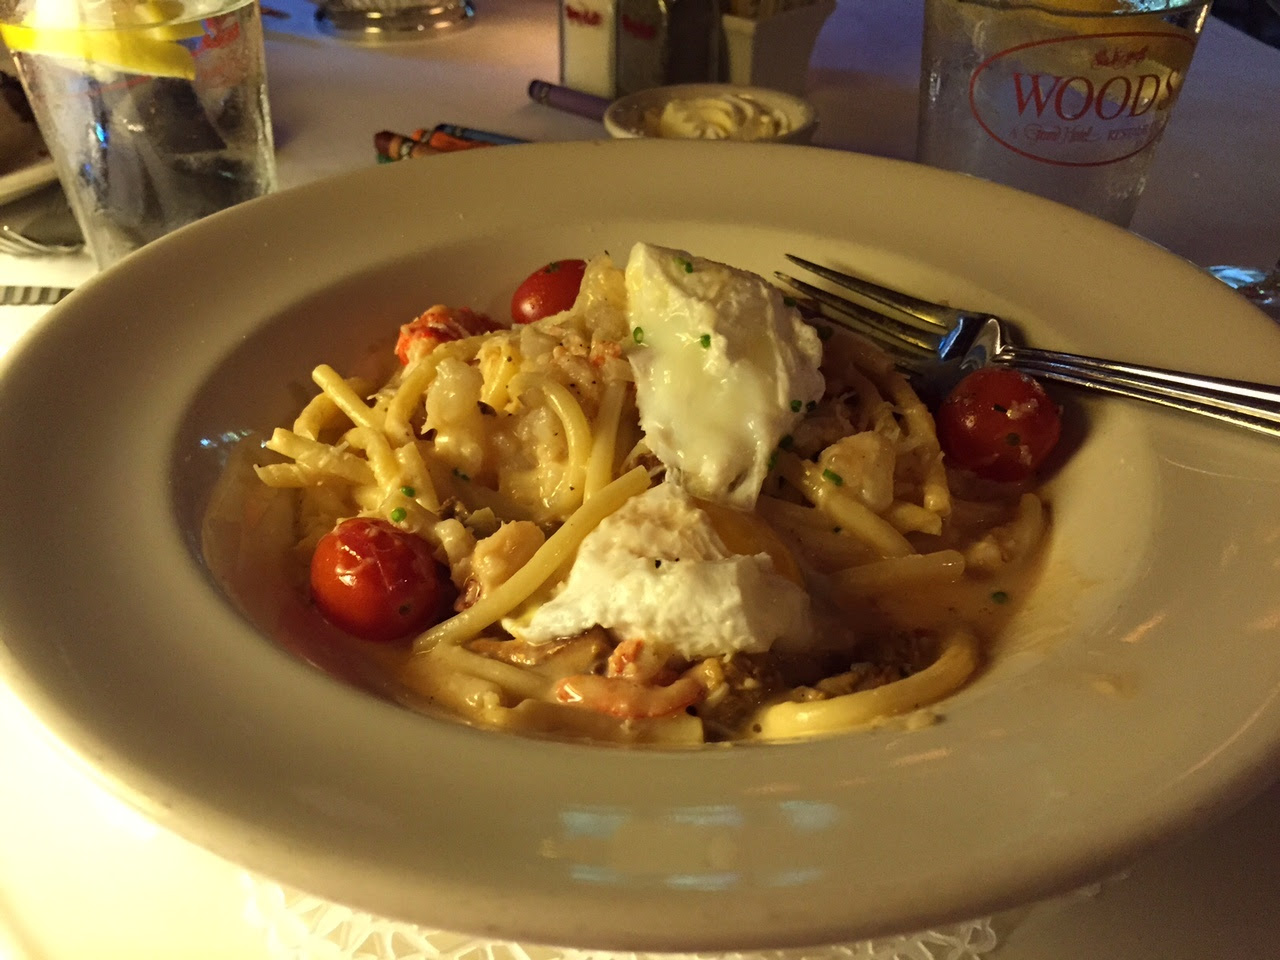 As an entrée, I ordered the Lobster Bucatini Carbonara with Artichokes, Chanterelle Mushrooms, and Soft Poached Egg.